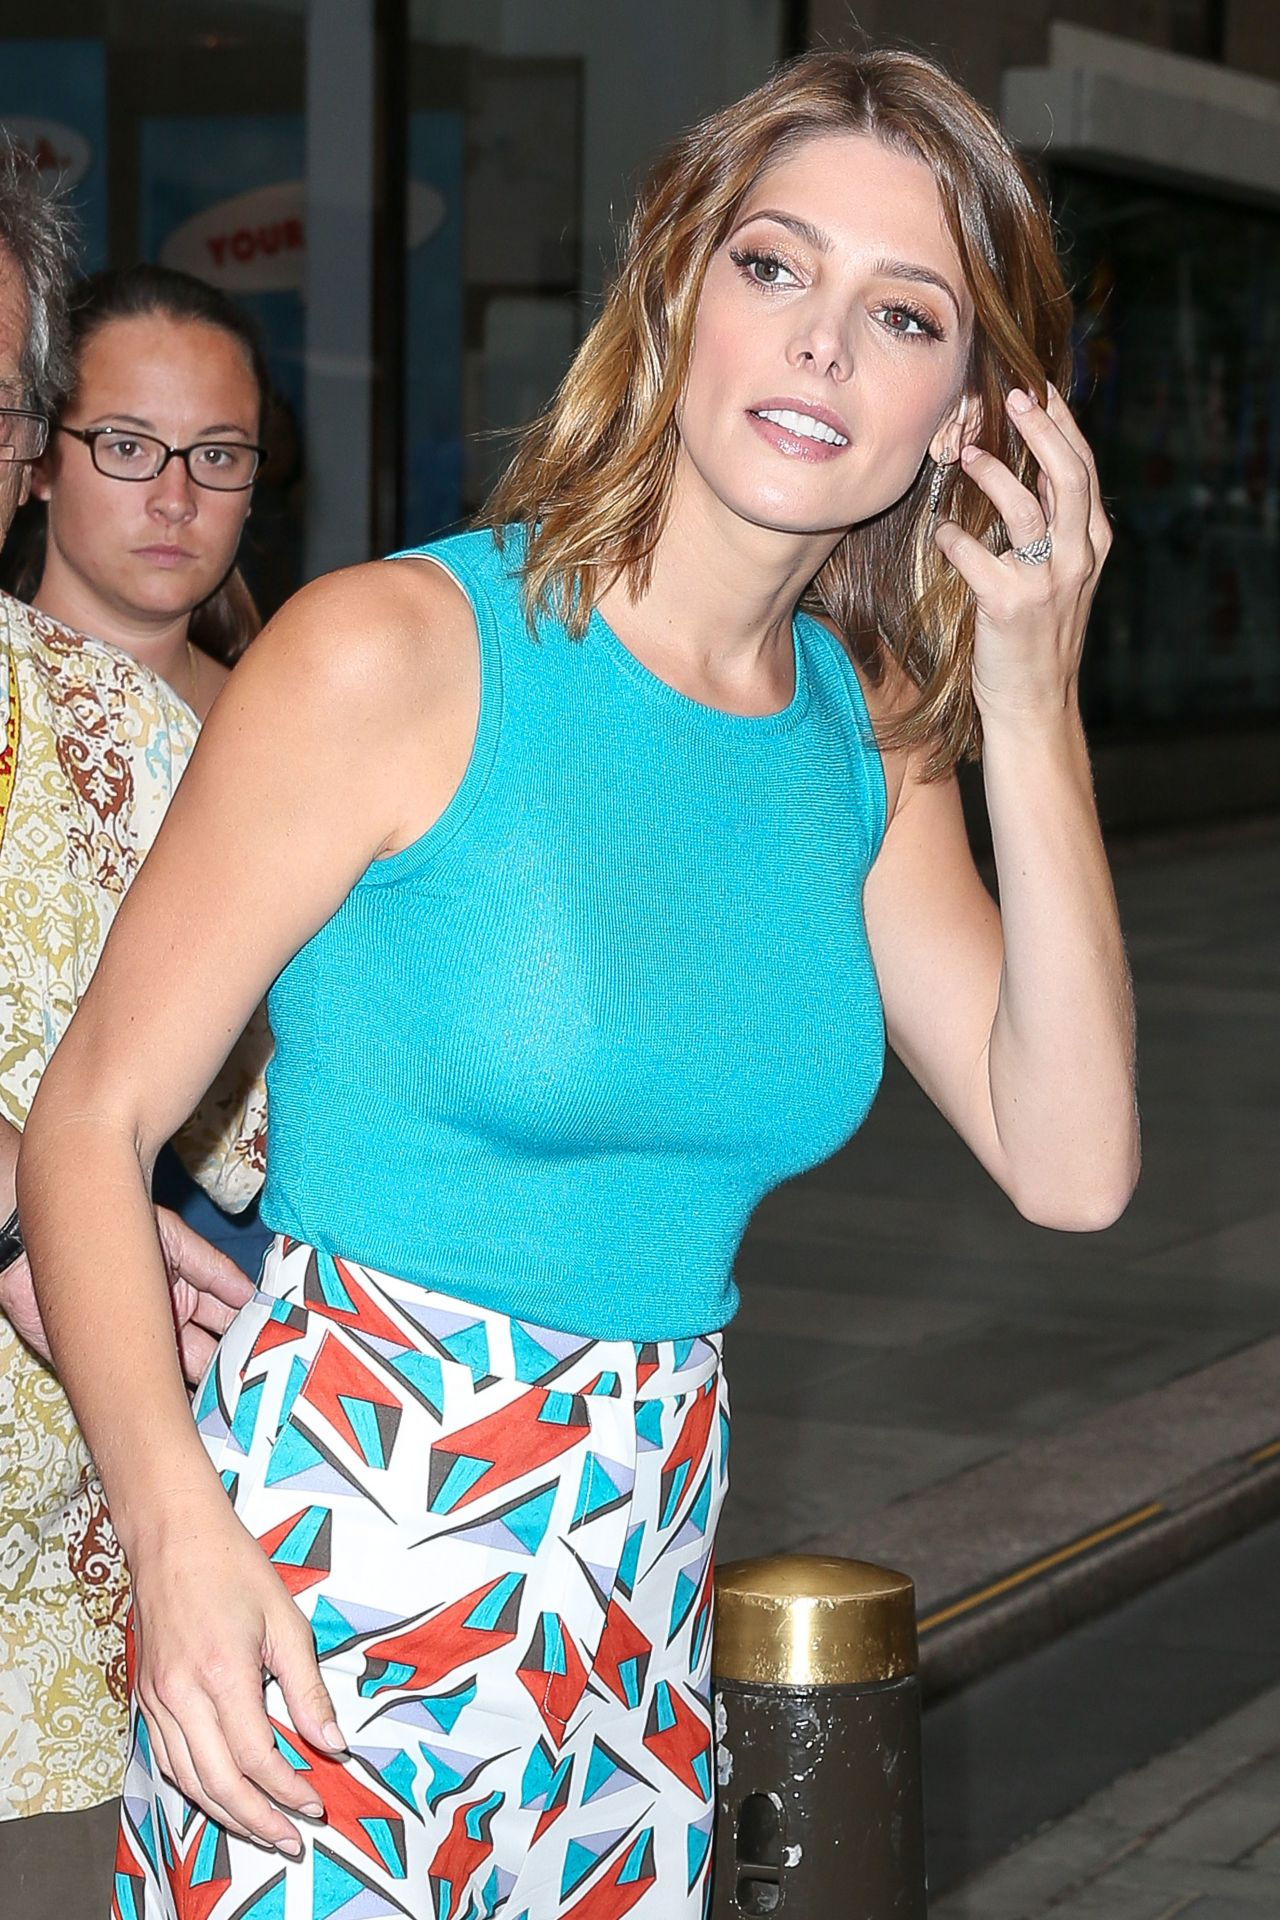 Ashley Greene at NBC Studios in New York City - July 2014